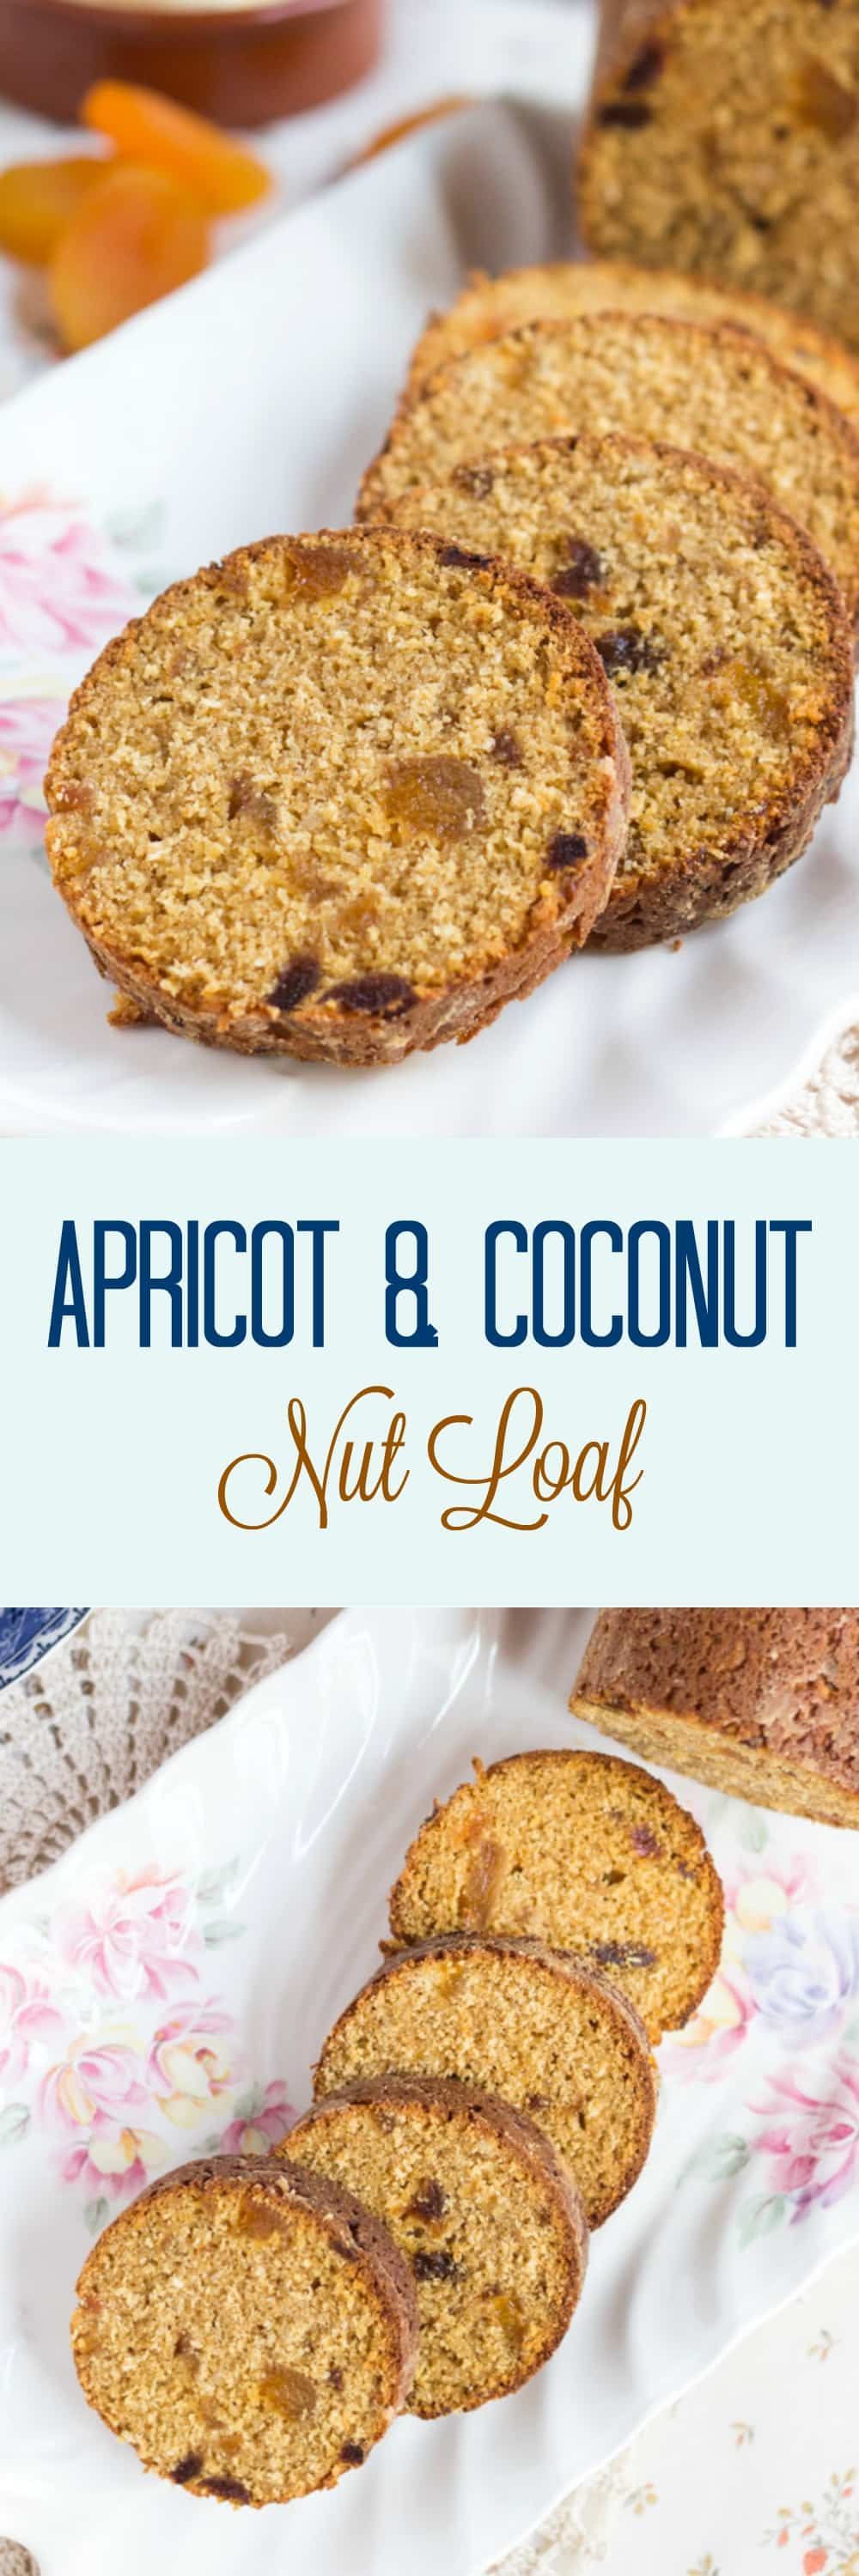 Wholemeal Apricot & Coconut Nut Loaf. Perfect for afternoon tea or tucked into lunchboxes.